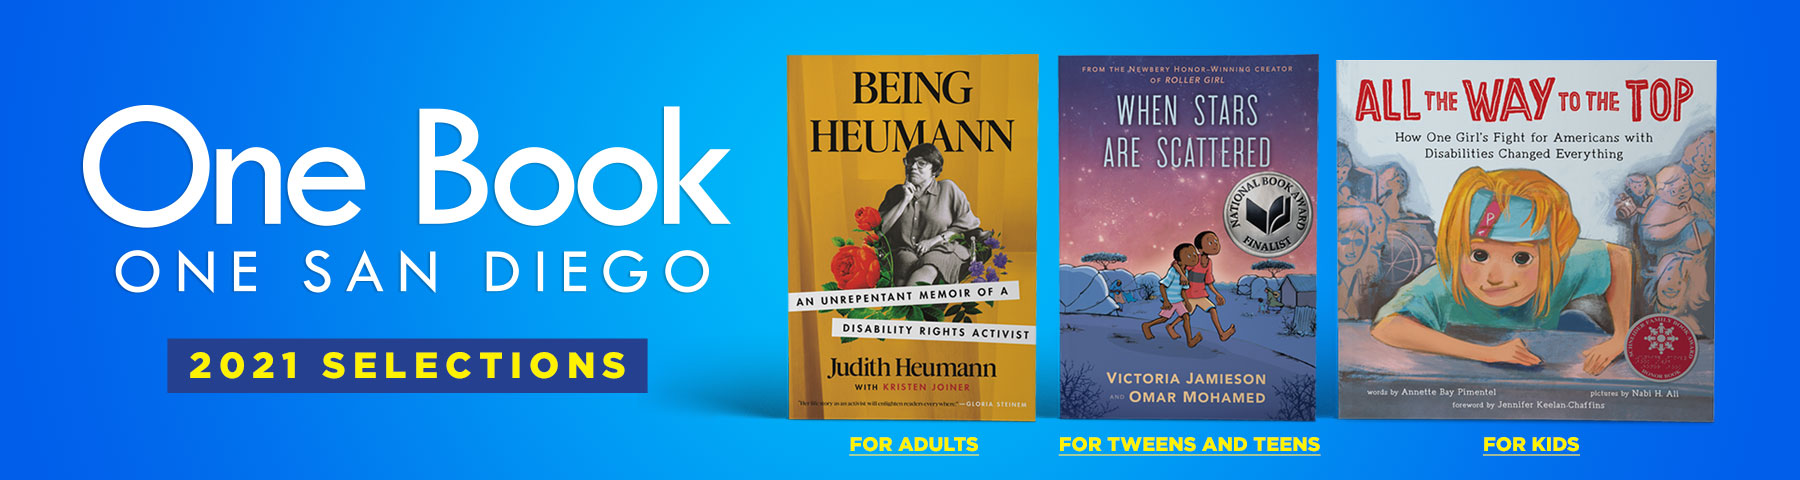 One Book One San Diego banner